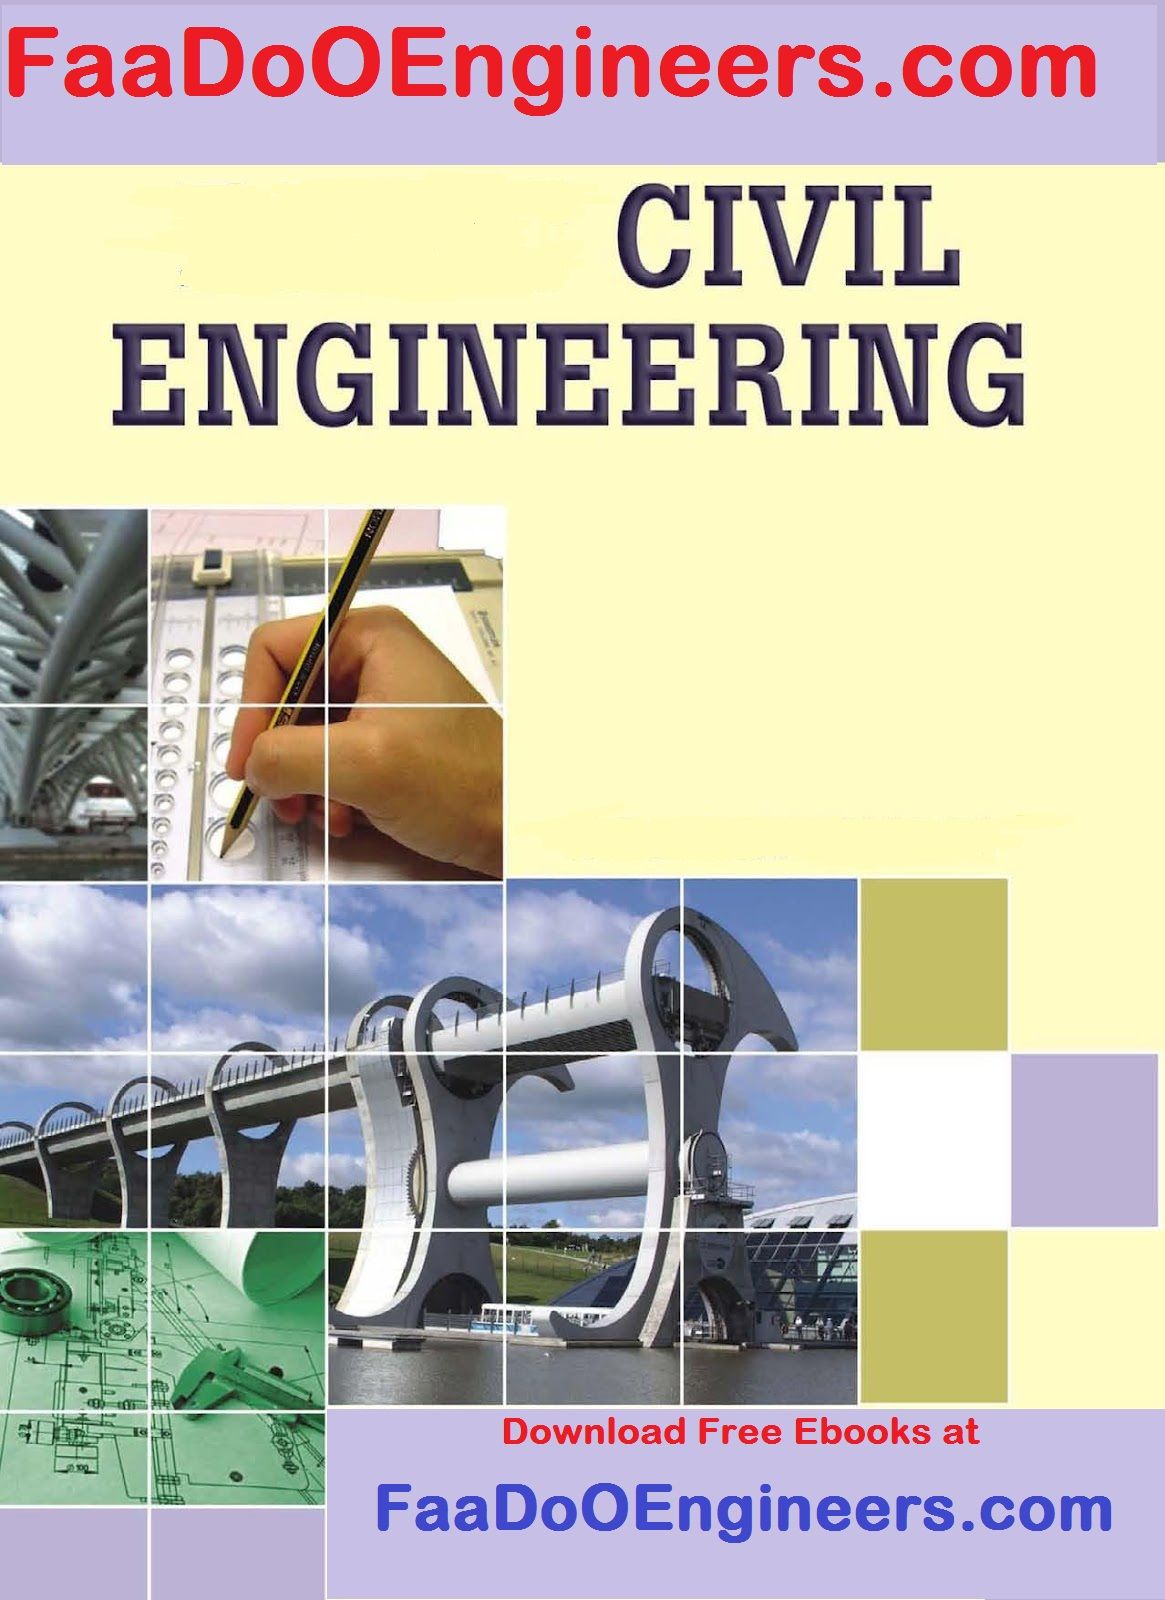 Download ebook for engineering free